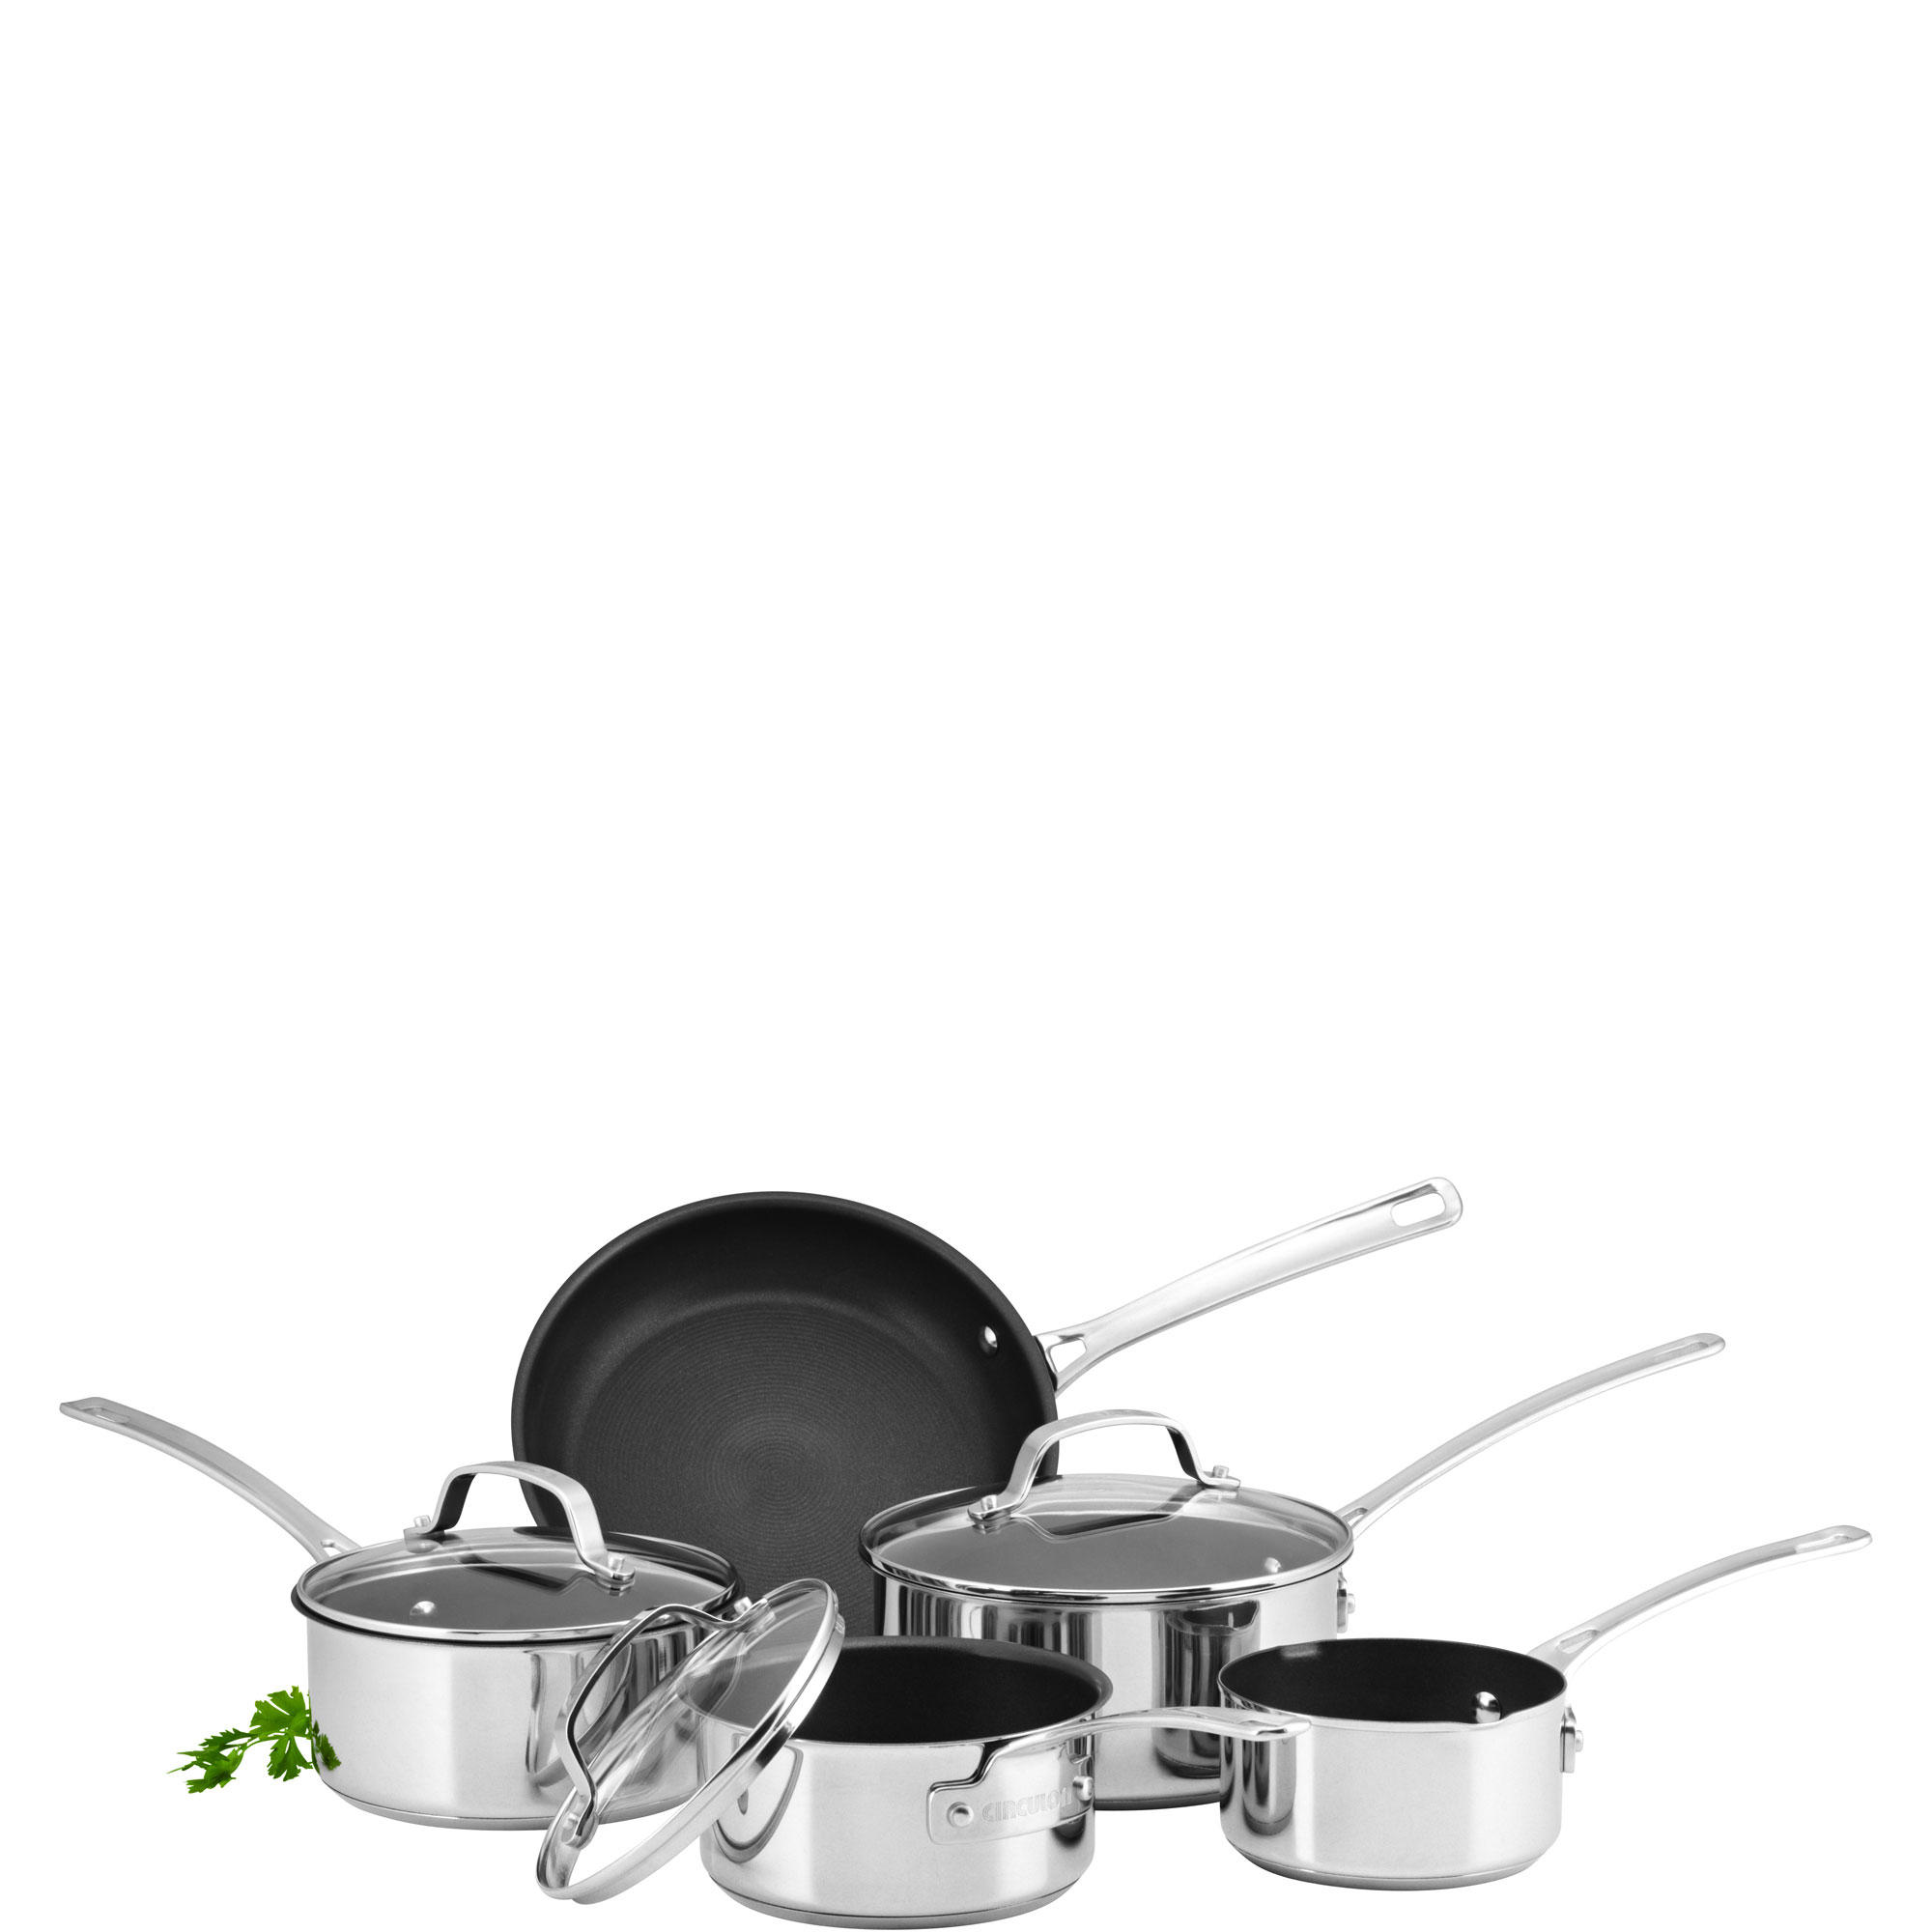 16 cm Cristel Cookway Master Saucepan Stainless Steel Stainless Steel